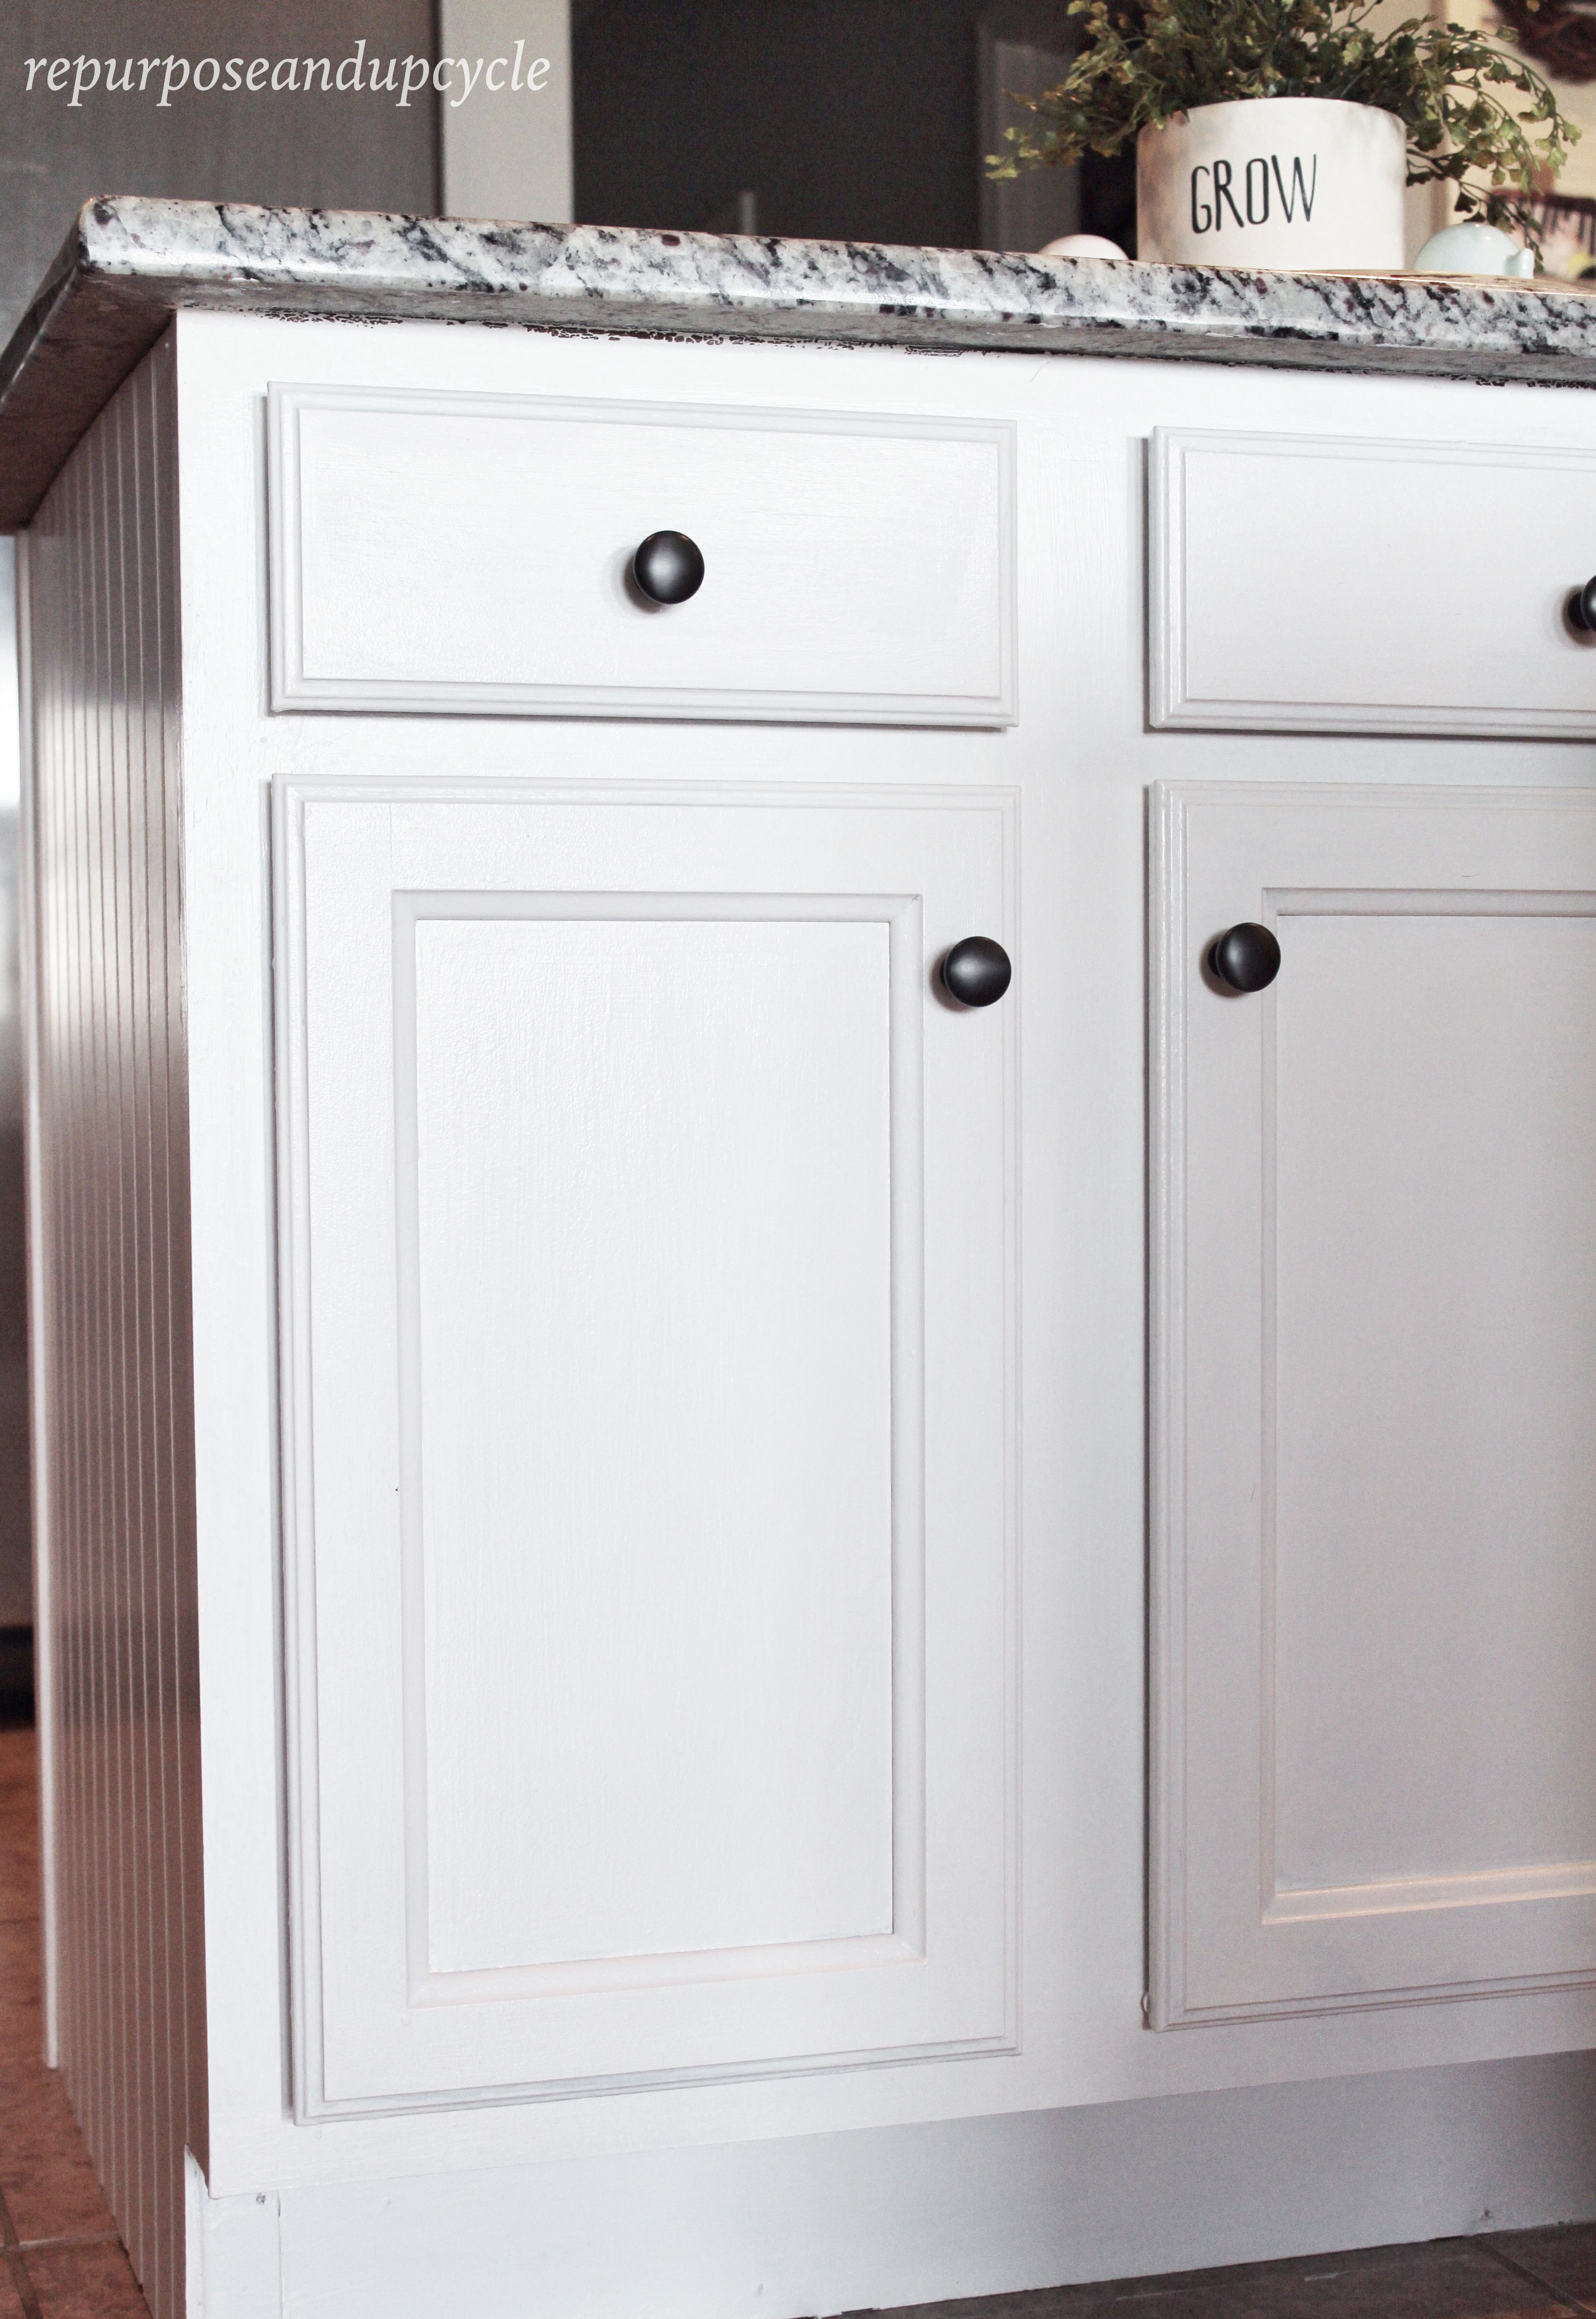 PAINTING LAMINATE CABINETS - repurpose and upcycle ...